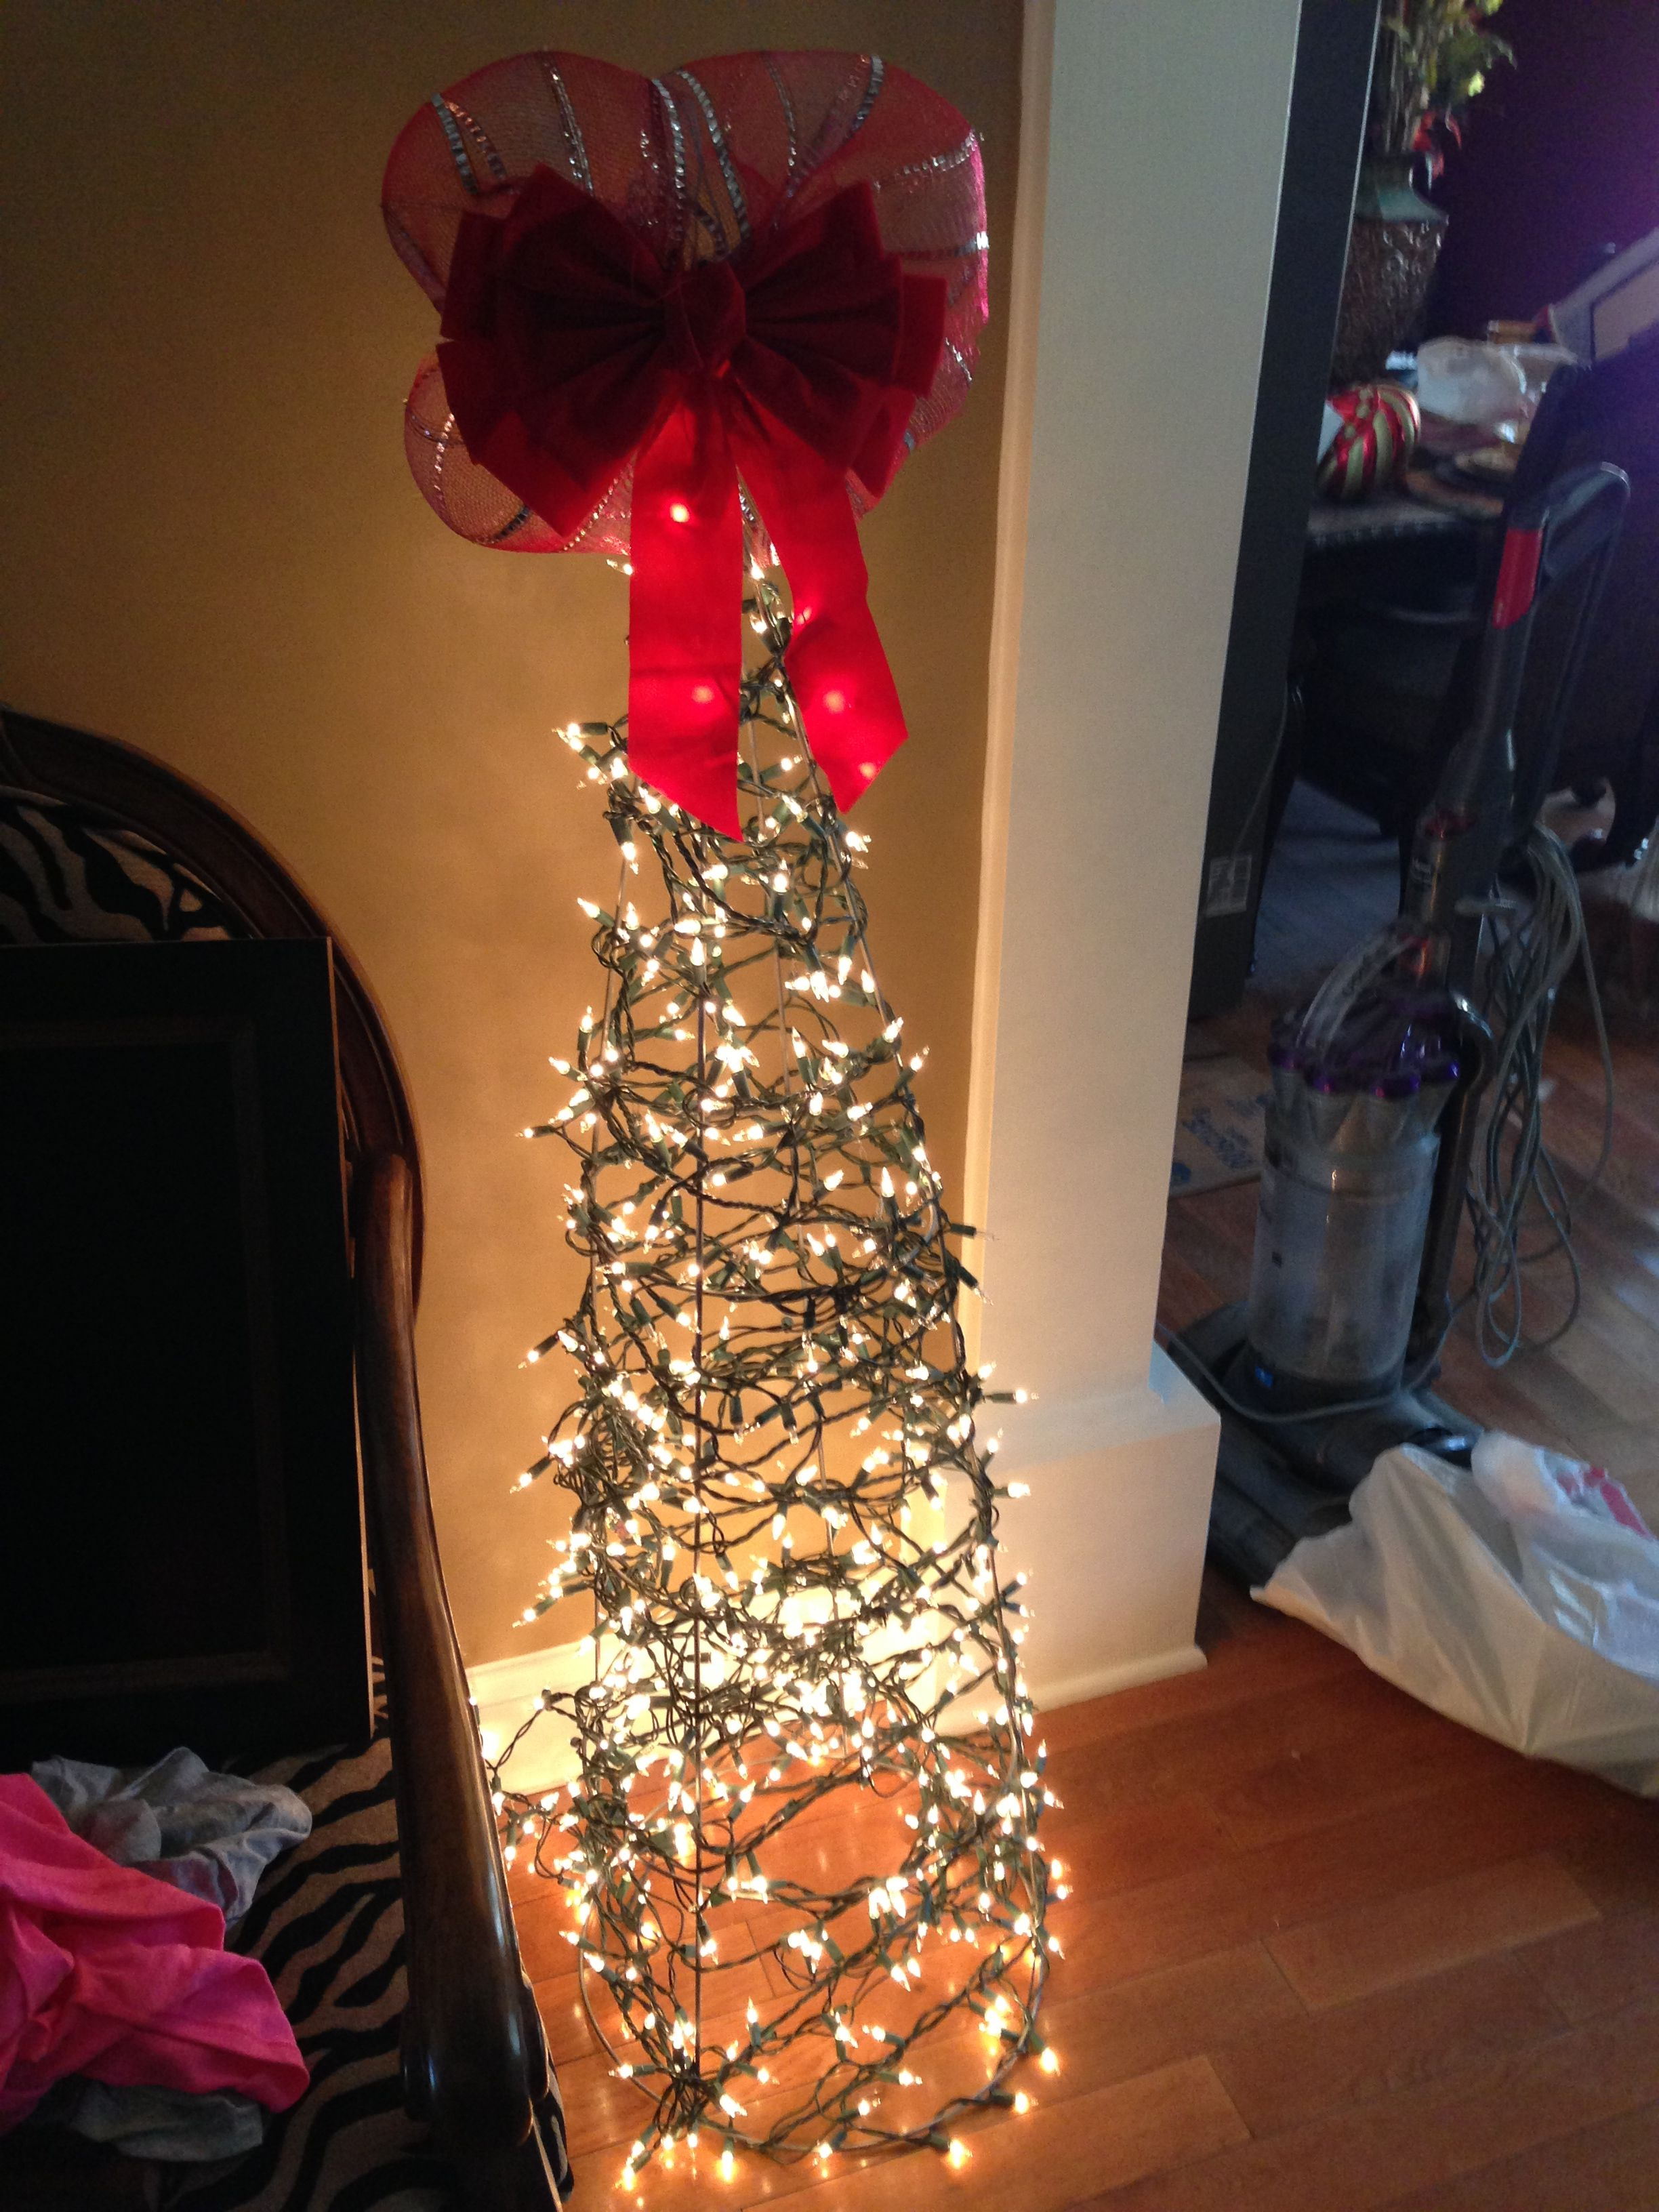 3 ft Outdoor Christmas tree that I made out of tomato cages & extra